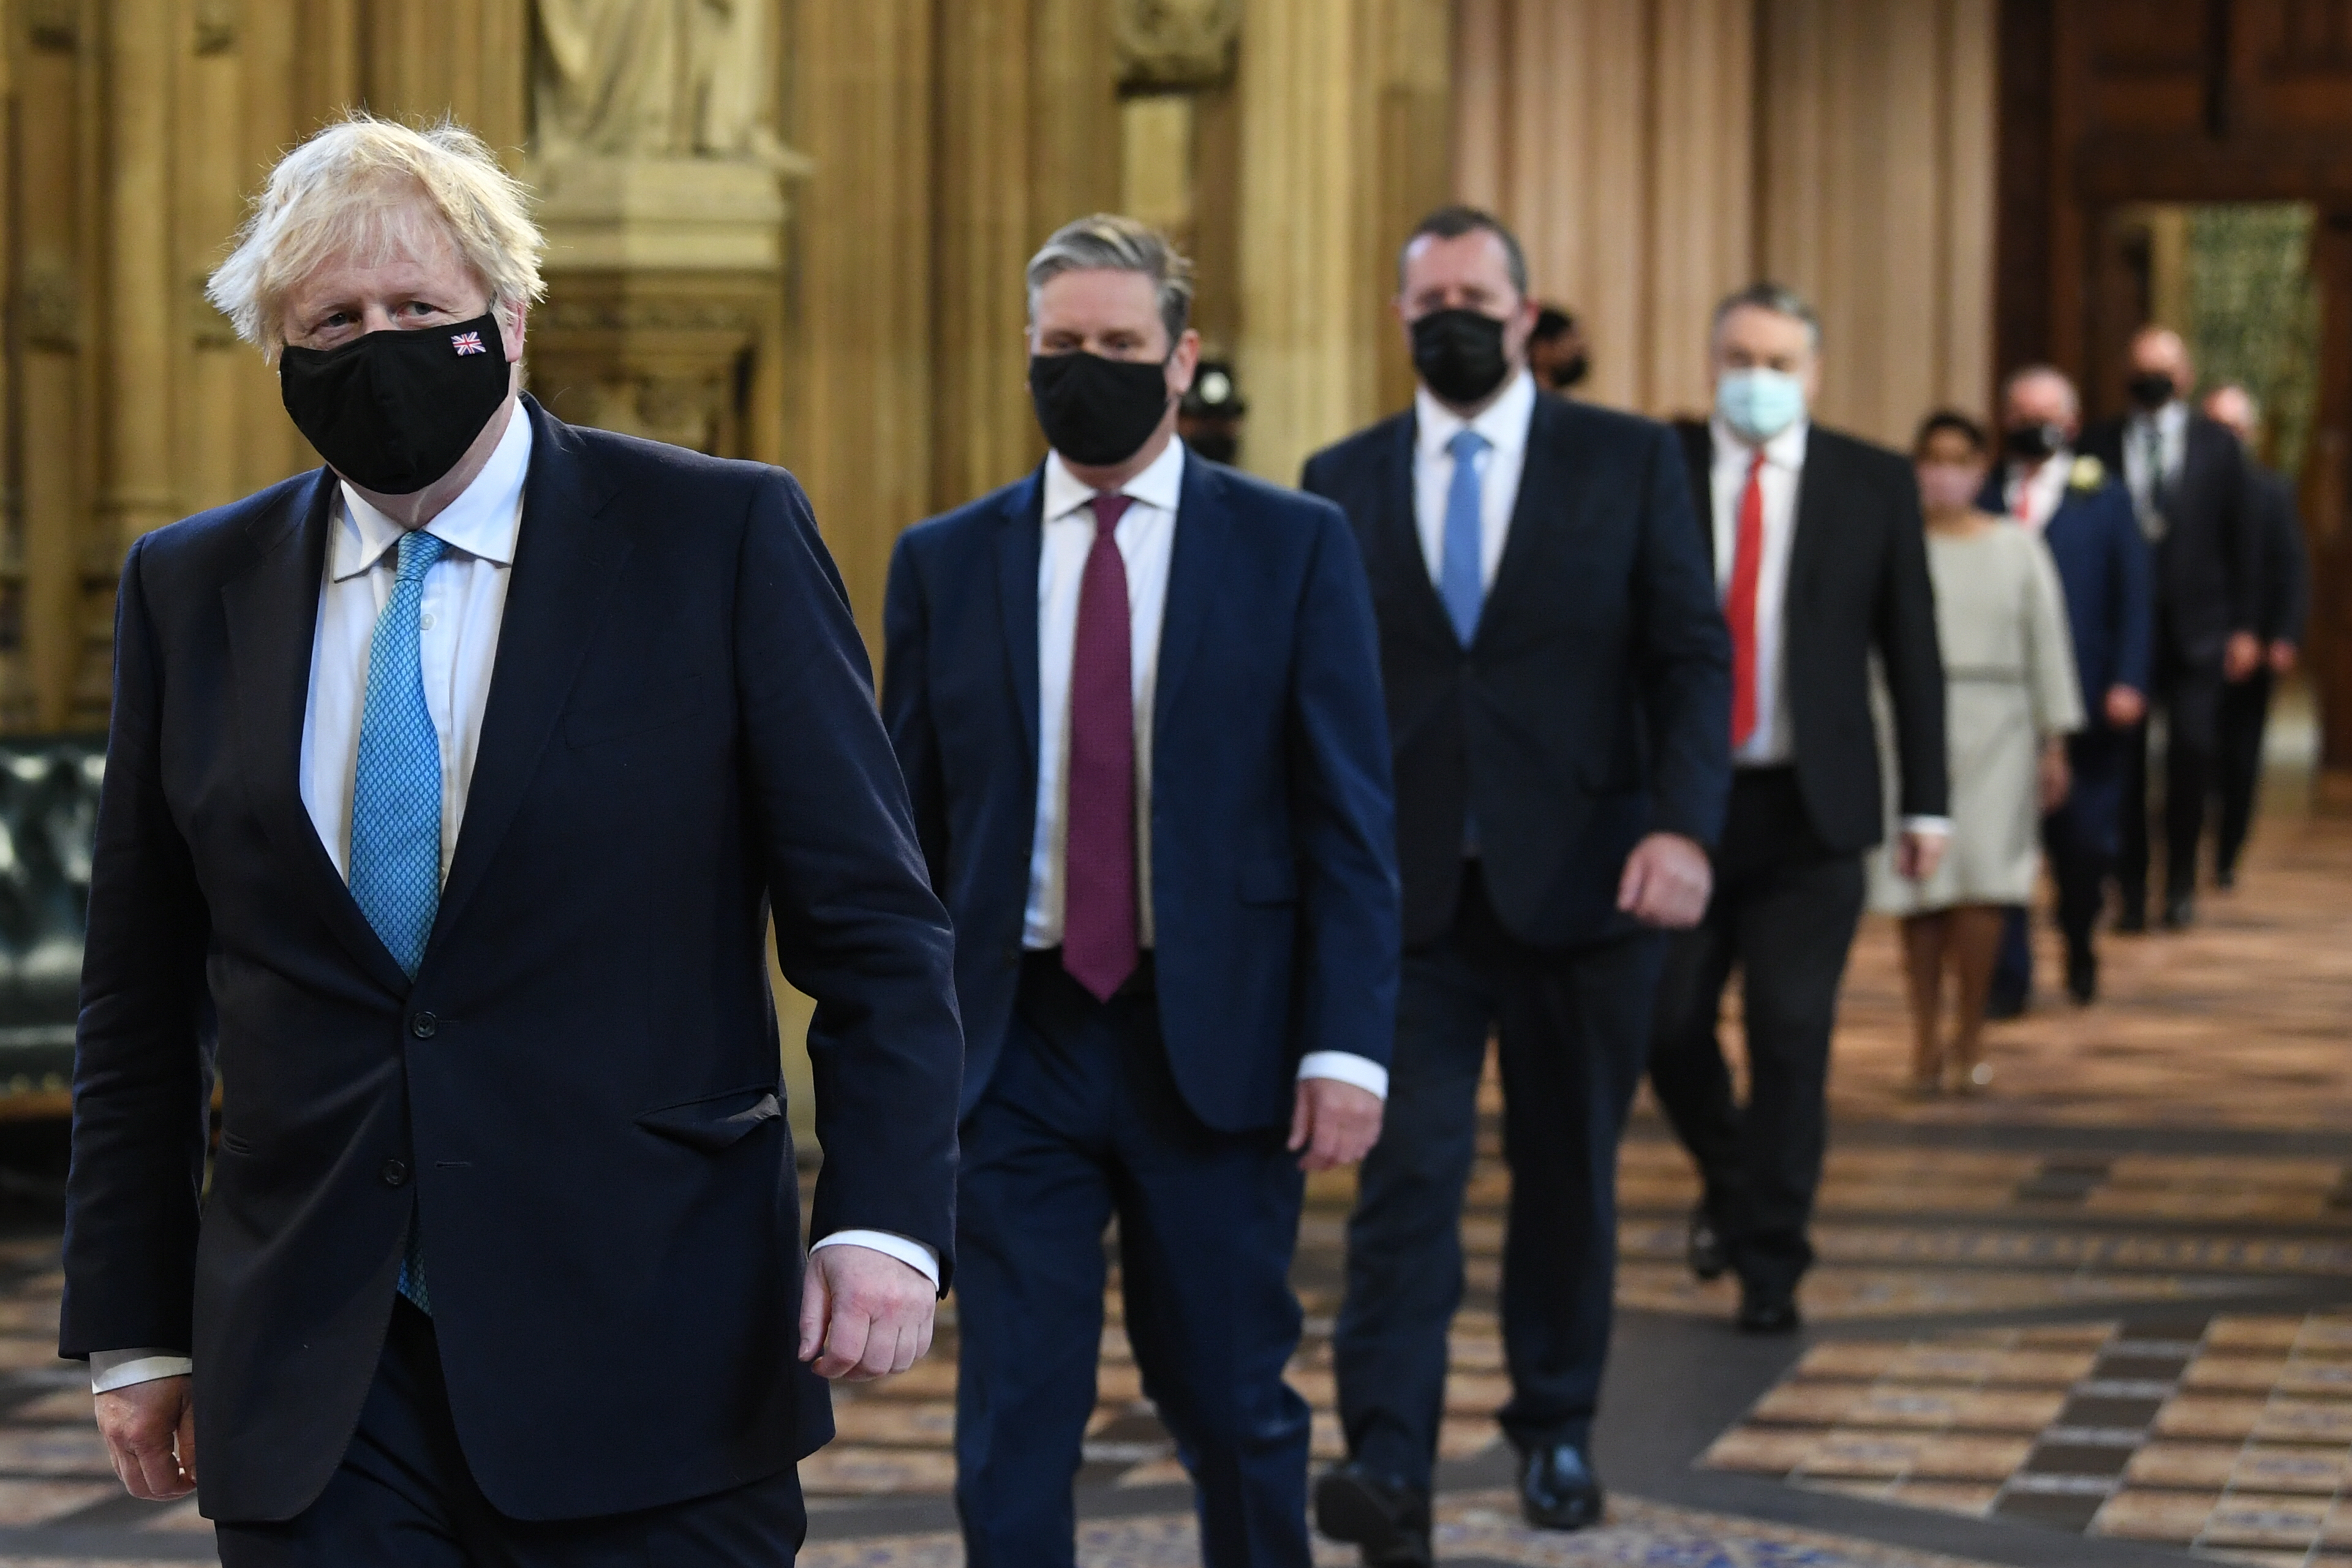 <p>Prime Minister Boris Johnson (left) and Labour leader Sir Keir Starmer (2nd left) walk through the Central Lobby on the way to the House of Lords to listen to the Queen's Speech during the State Opening of Parliament in the House of Lords at the Palace of Westminster in London. Picture date: Tuesday May 11, 2021.</p>